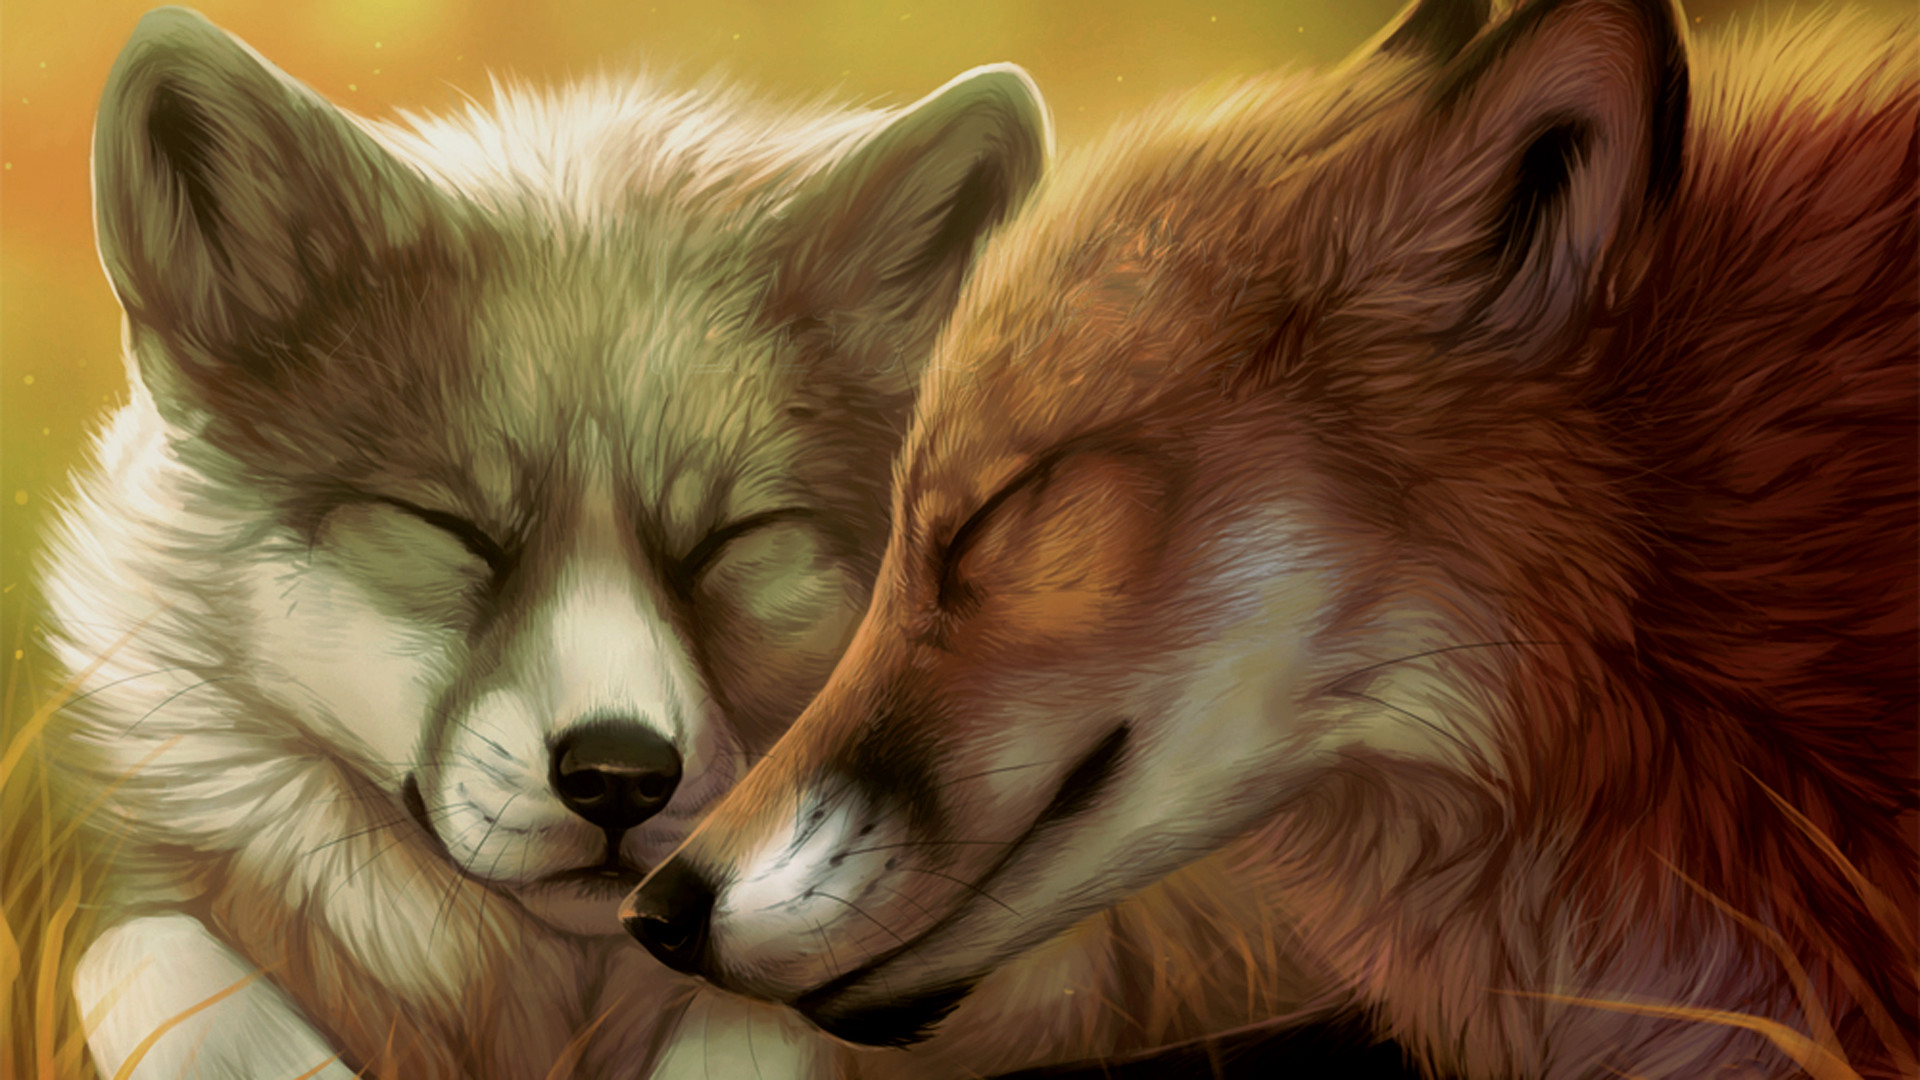 1920x1080 Wolf love wallpaper - photo#21